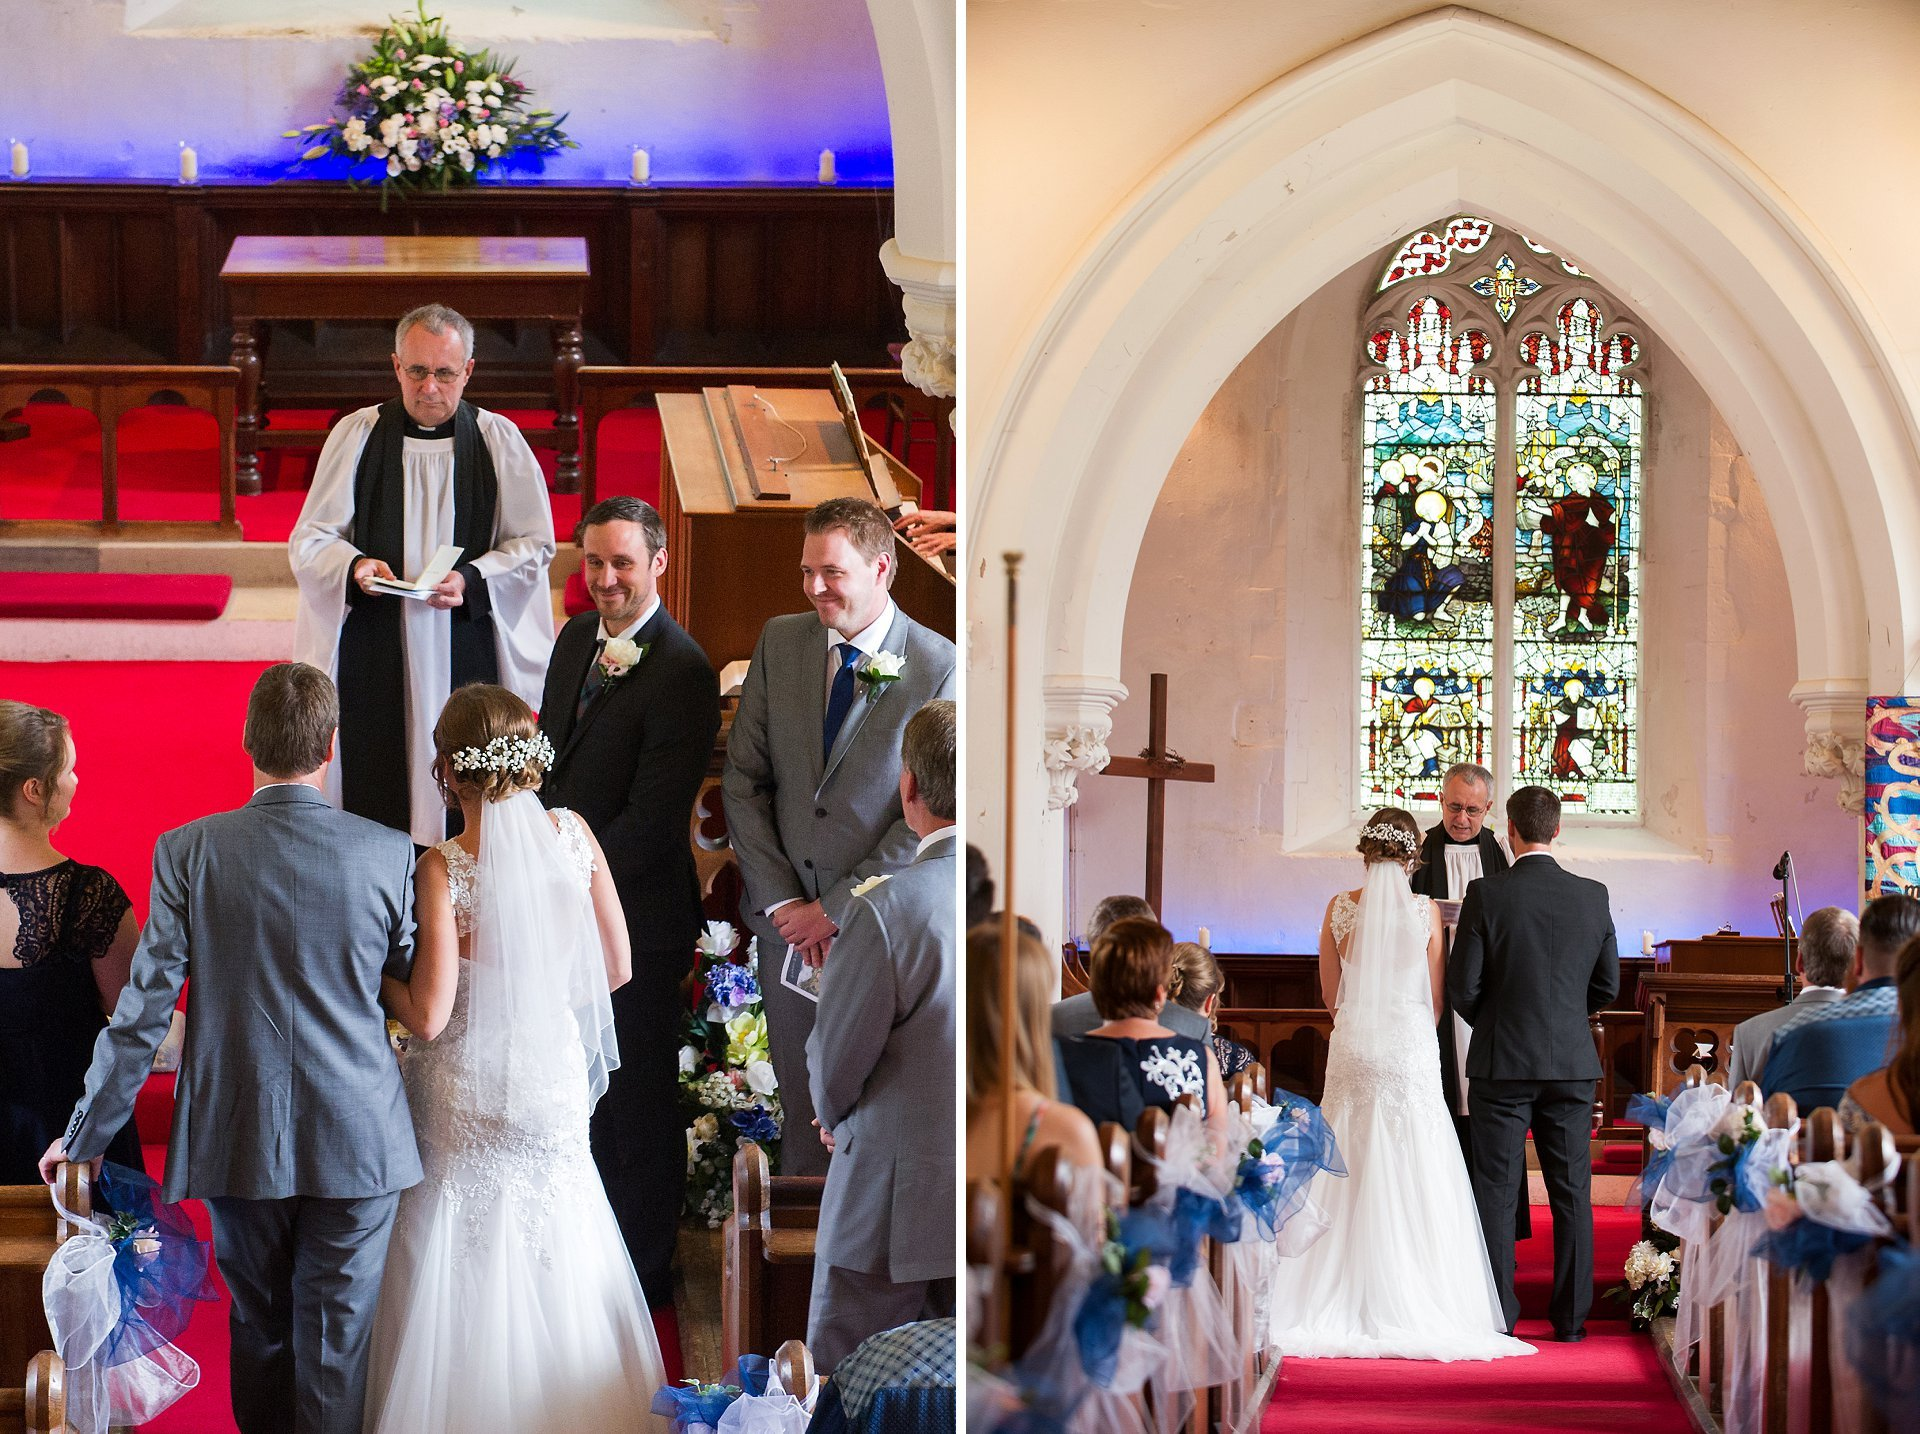 The groom, Brady, smiles warmly as his bride reaches the end of the aisle ready for their marriage blessing in this pretty Kent church